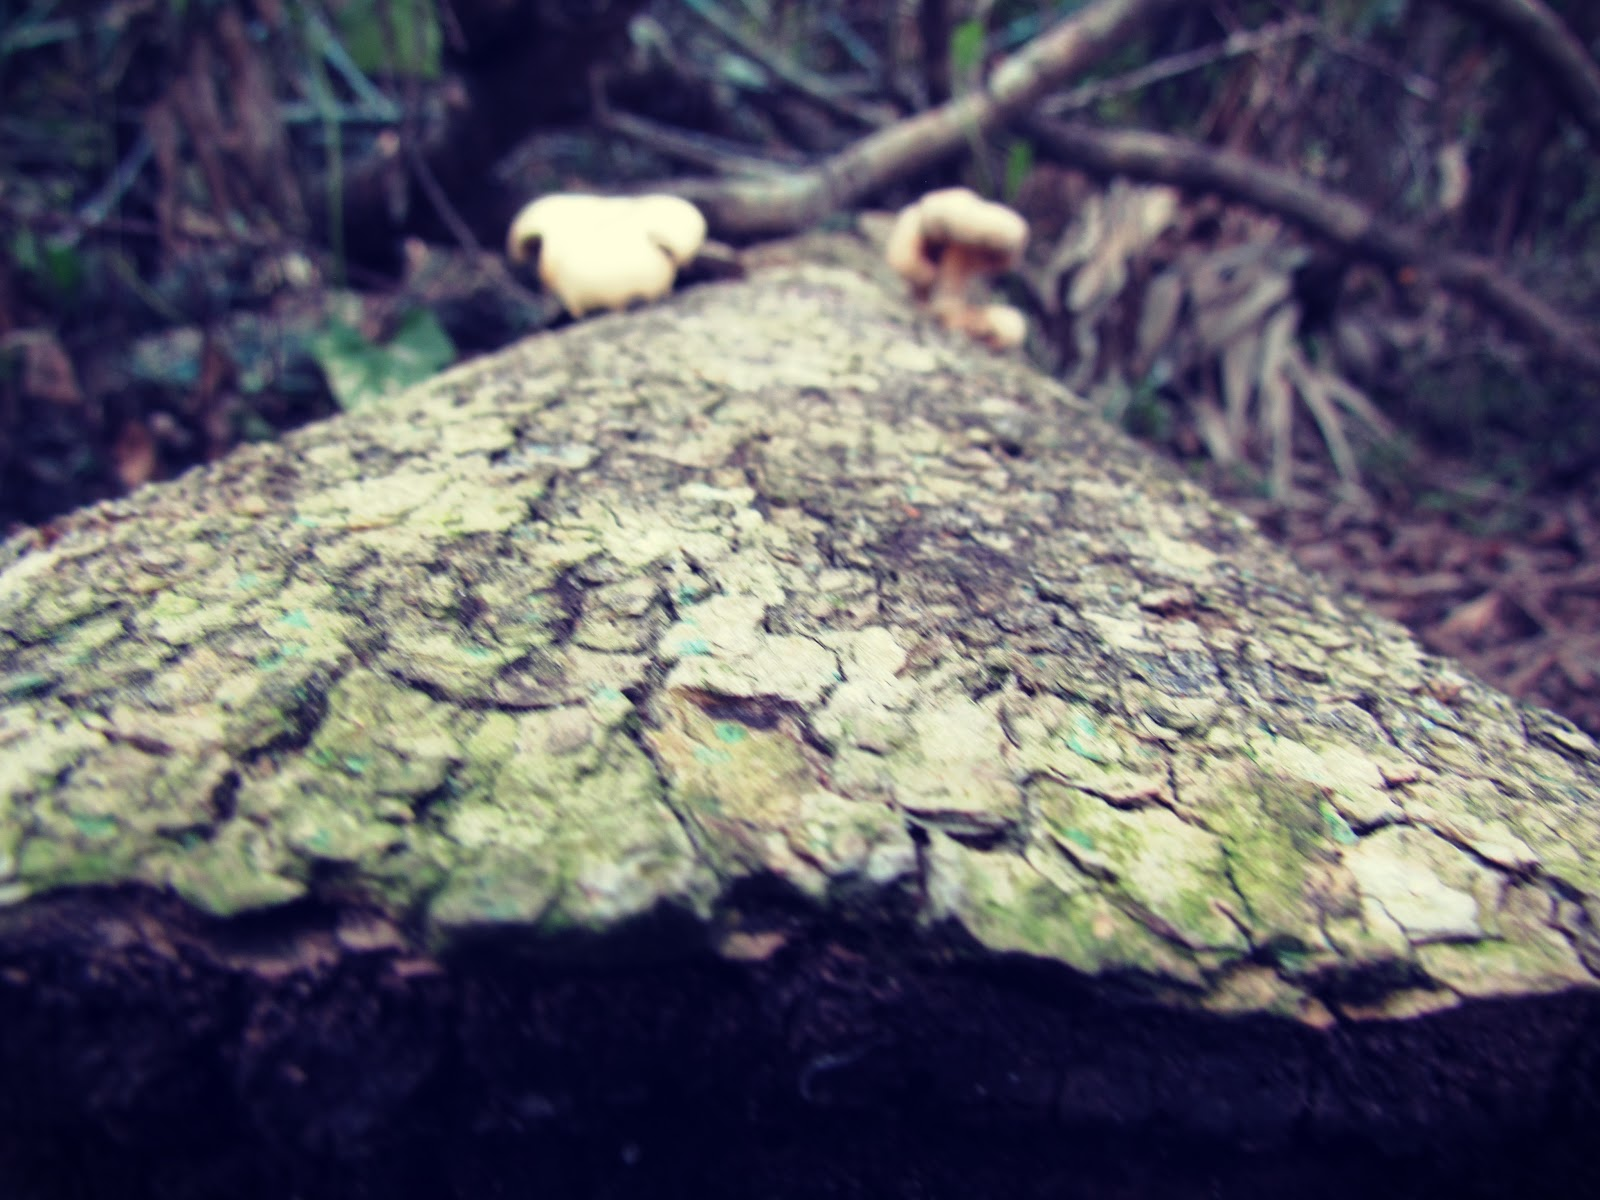 Forest Log Growing Edible Oyster Mushrooms in the Wet Rainforests of Florida Wildlife